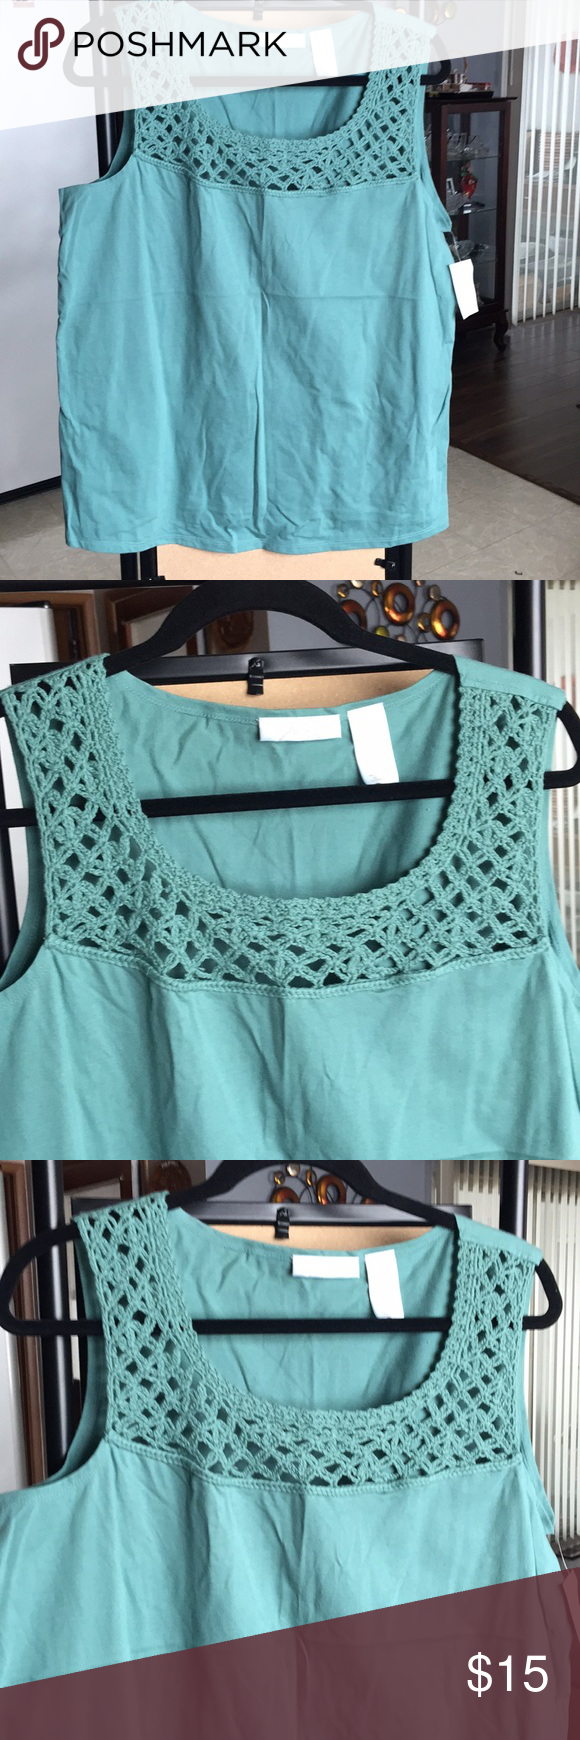 35997087c30 Women  s top NWT. Cute sleeveless top. Perfect for spring   summer.  Measurements(lay flat) Armpit to armpit- 22